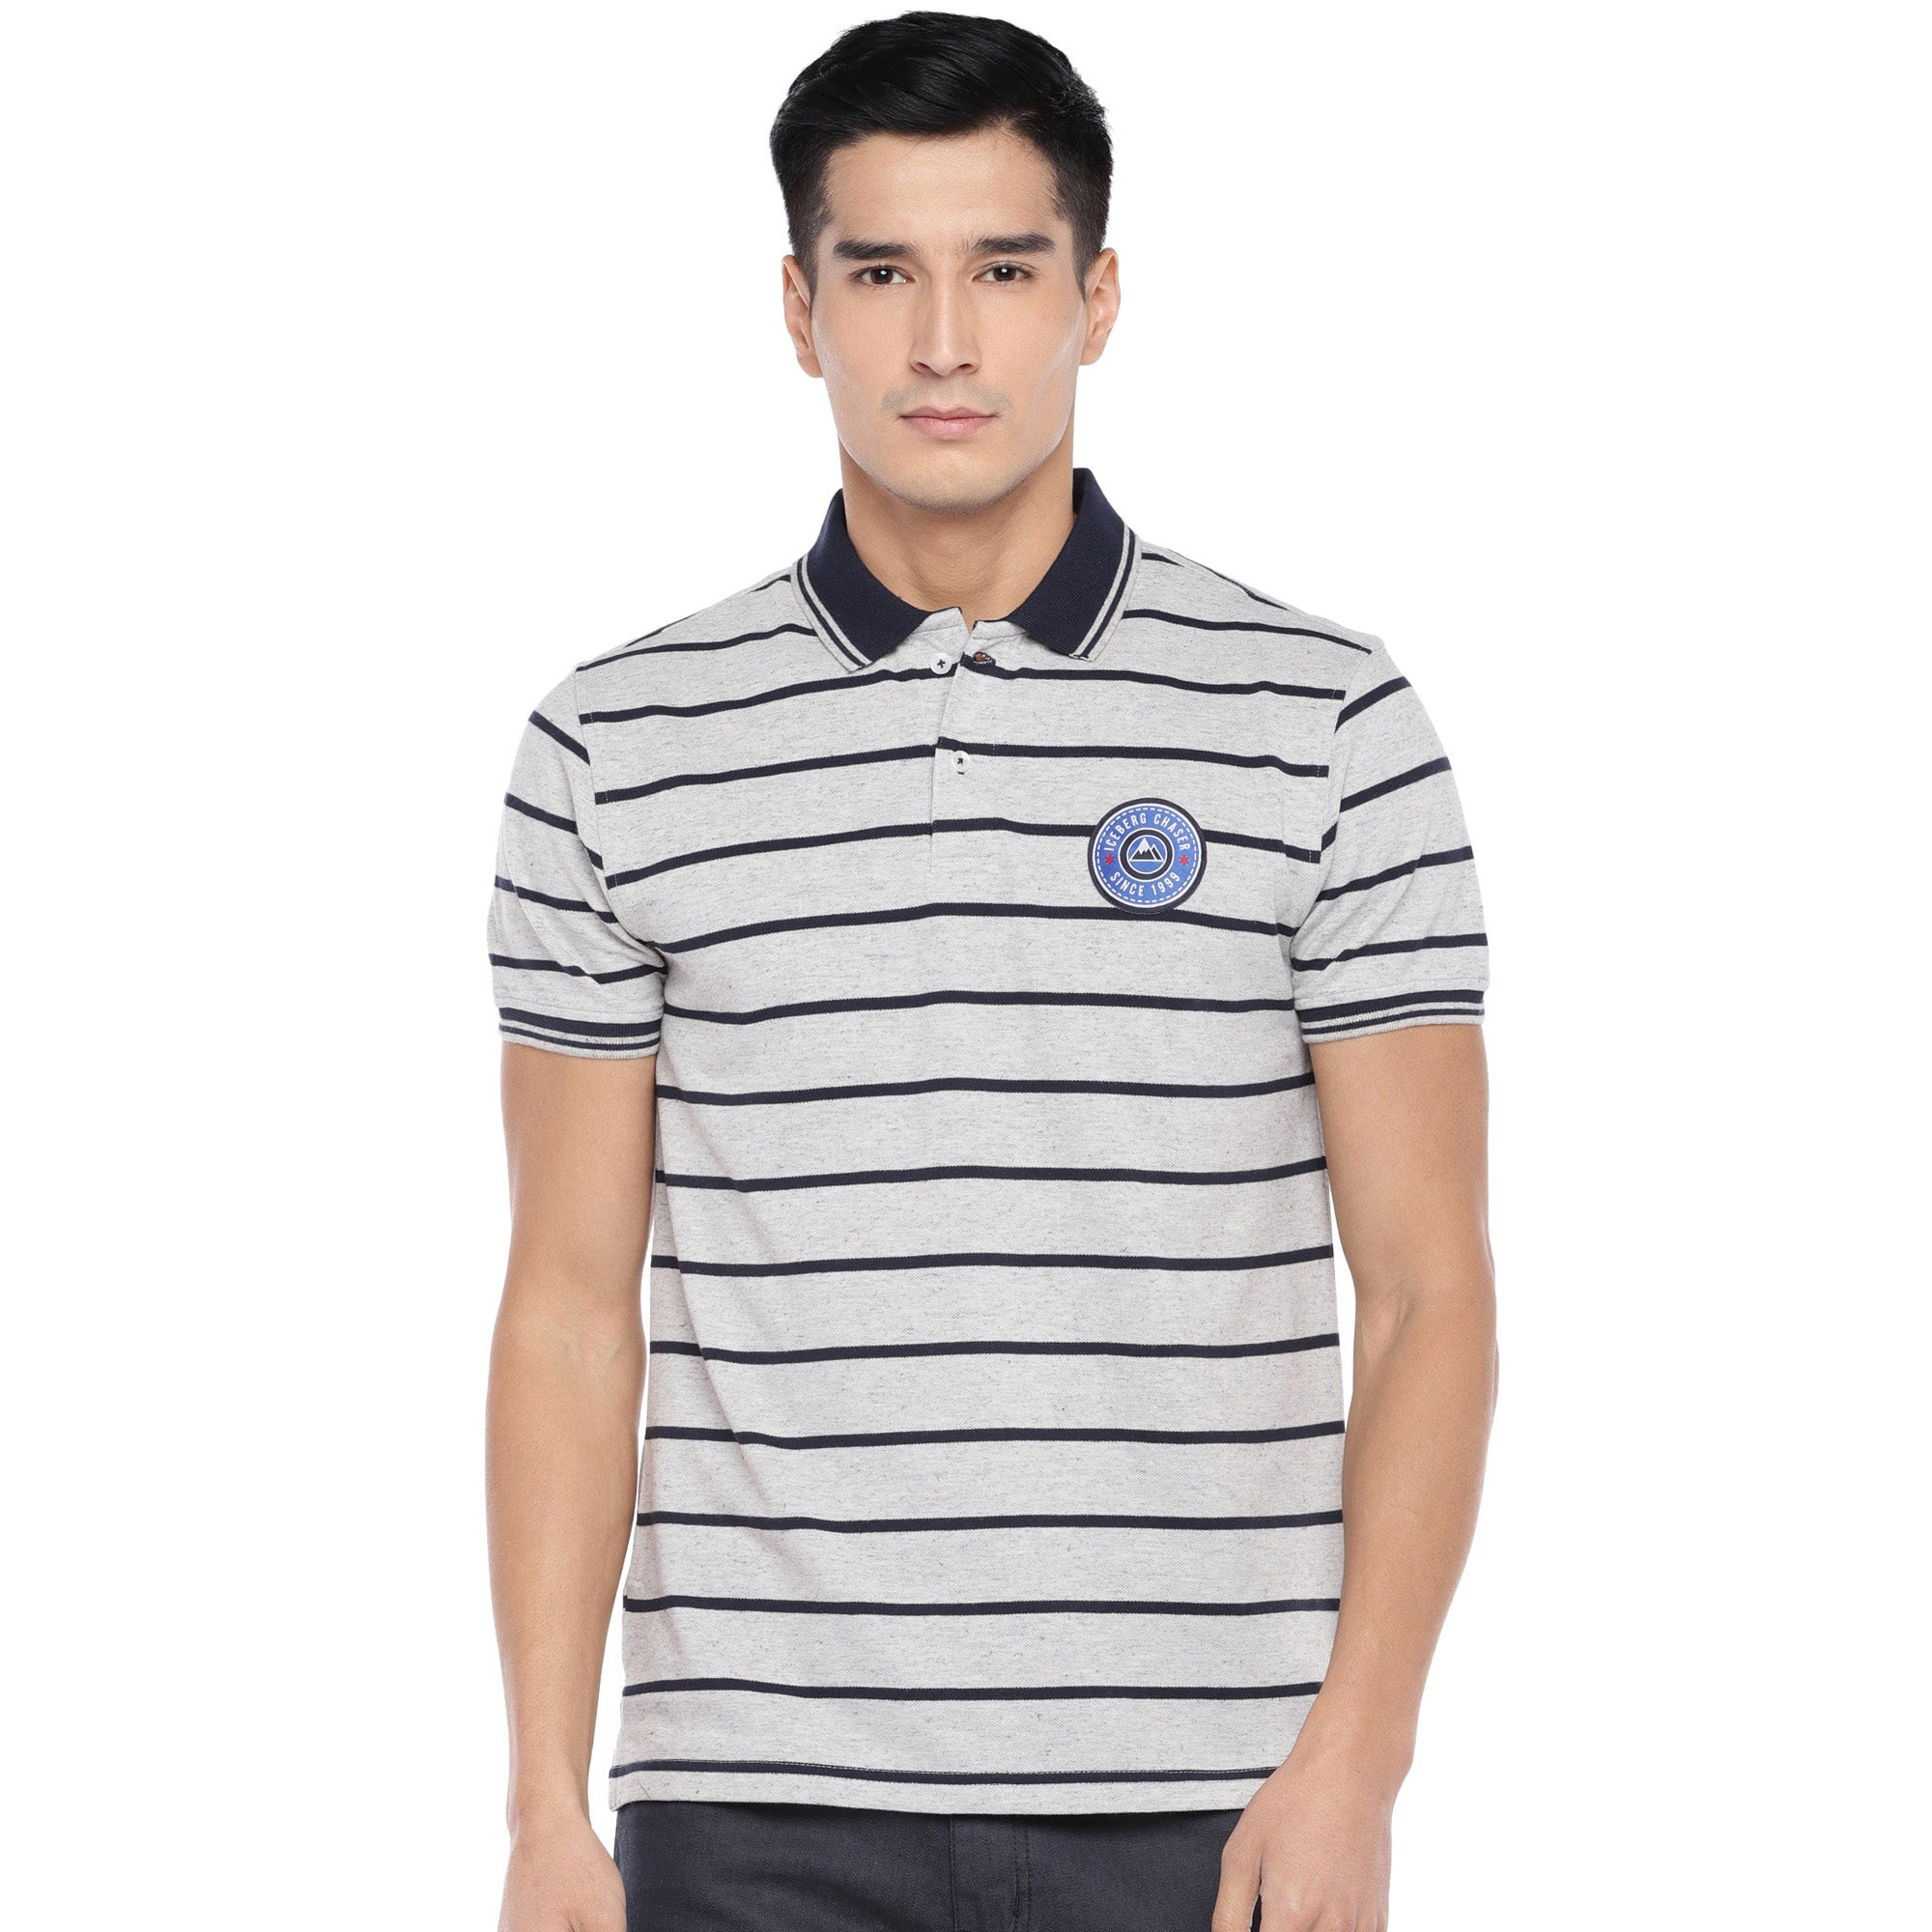 Grey Striped Polo T-Shirt-1